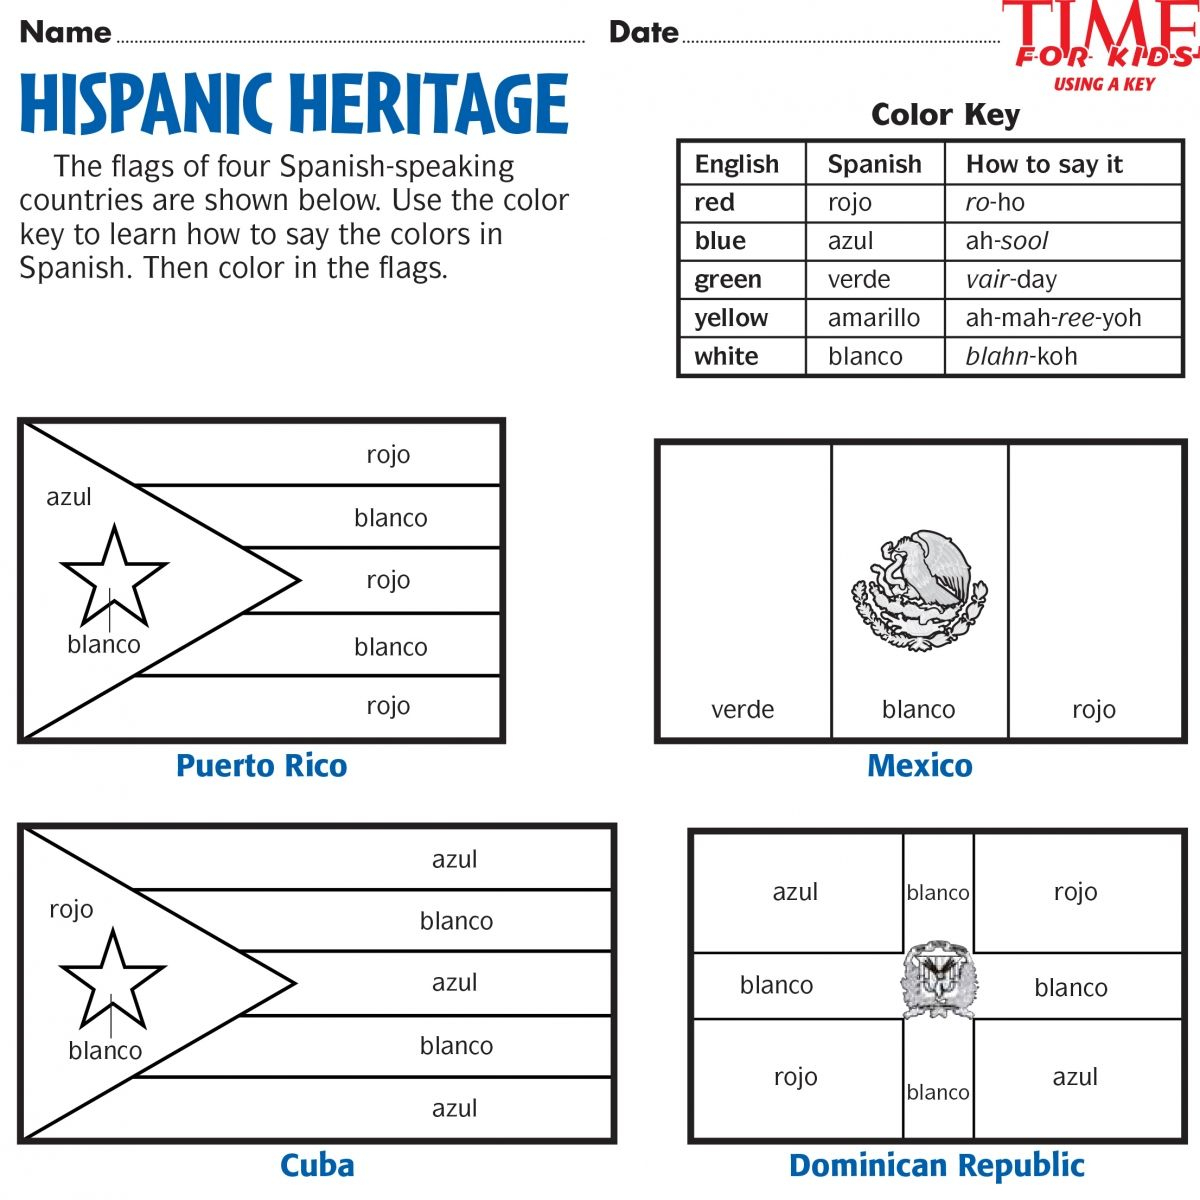 Printables For Hispanic Heritage Month | Time For Kids | Hispanic | Hispanic Heritage Month Printable Worksheets